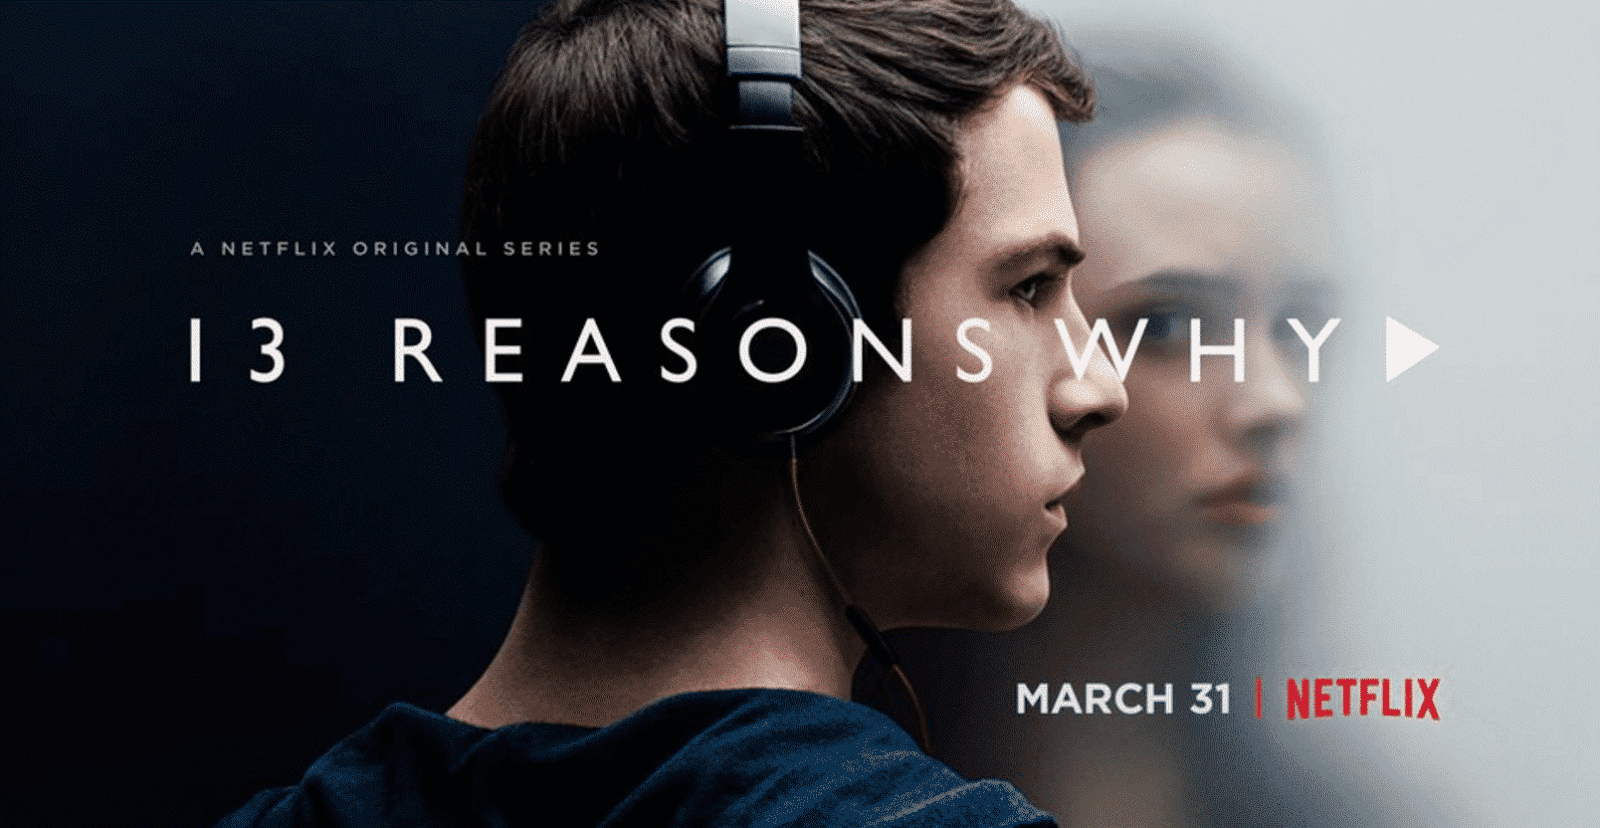 13 reasons why pourquoi regarder